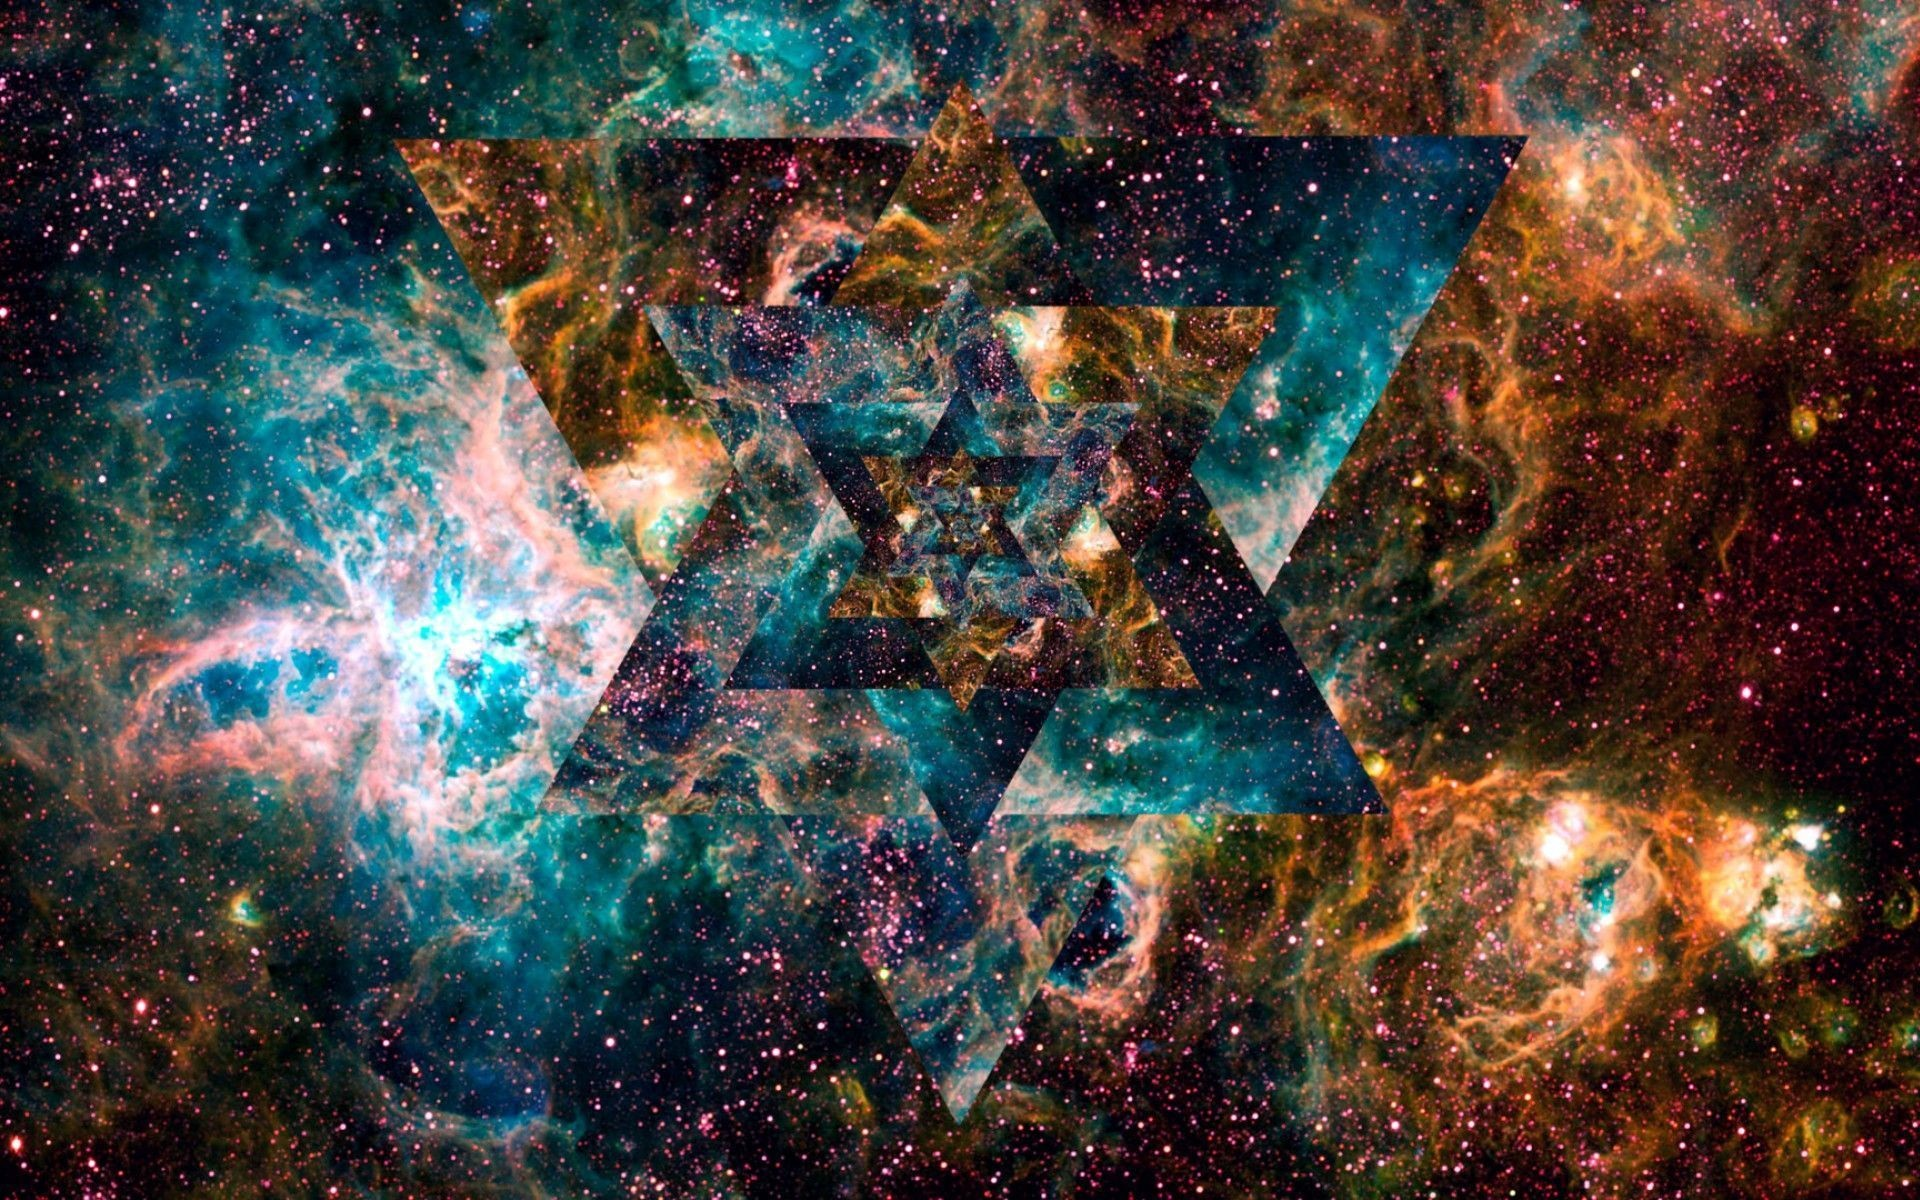 1920x1200 Trippy Space Wallpapers Wallpaper 1920×1080 Trippy Space Backgrounds (43  Wallpapers) | Adorable